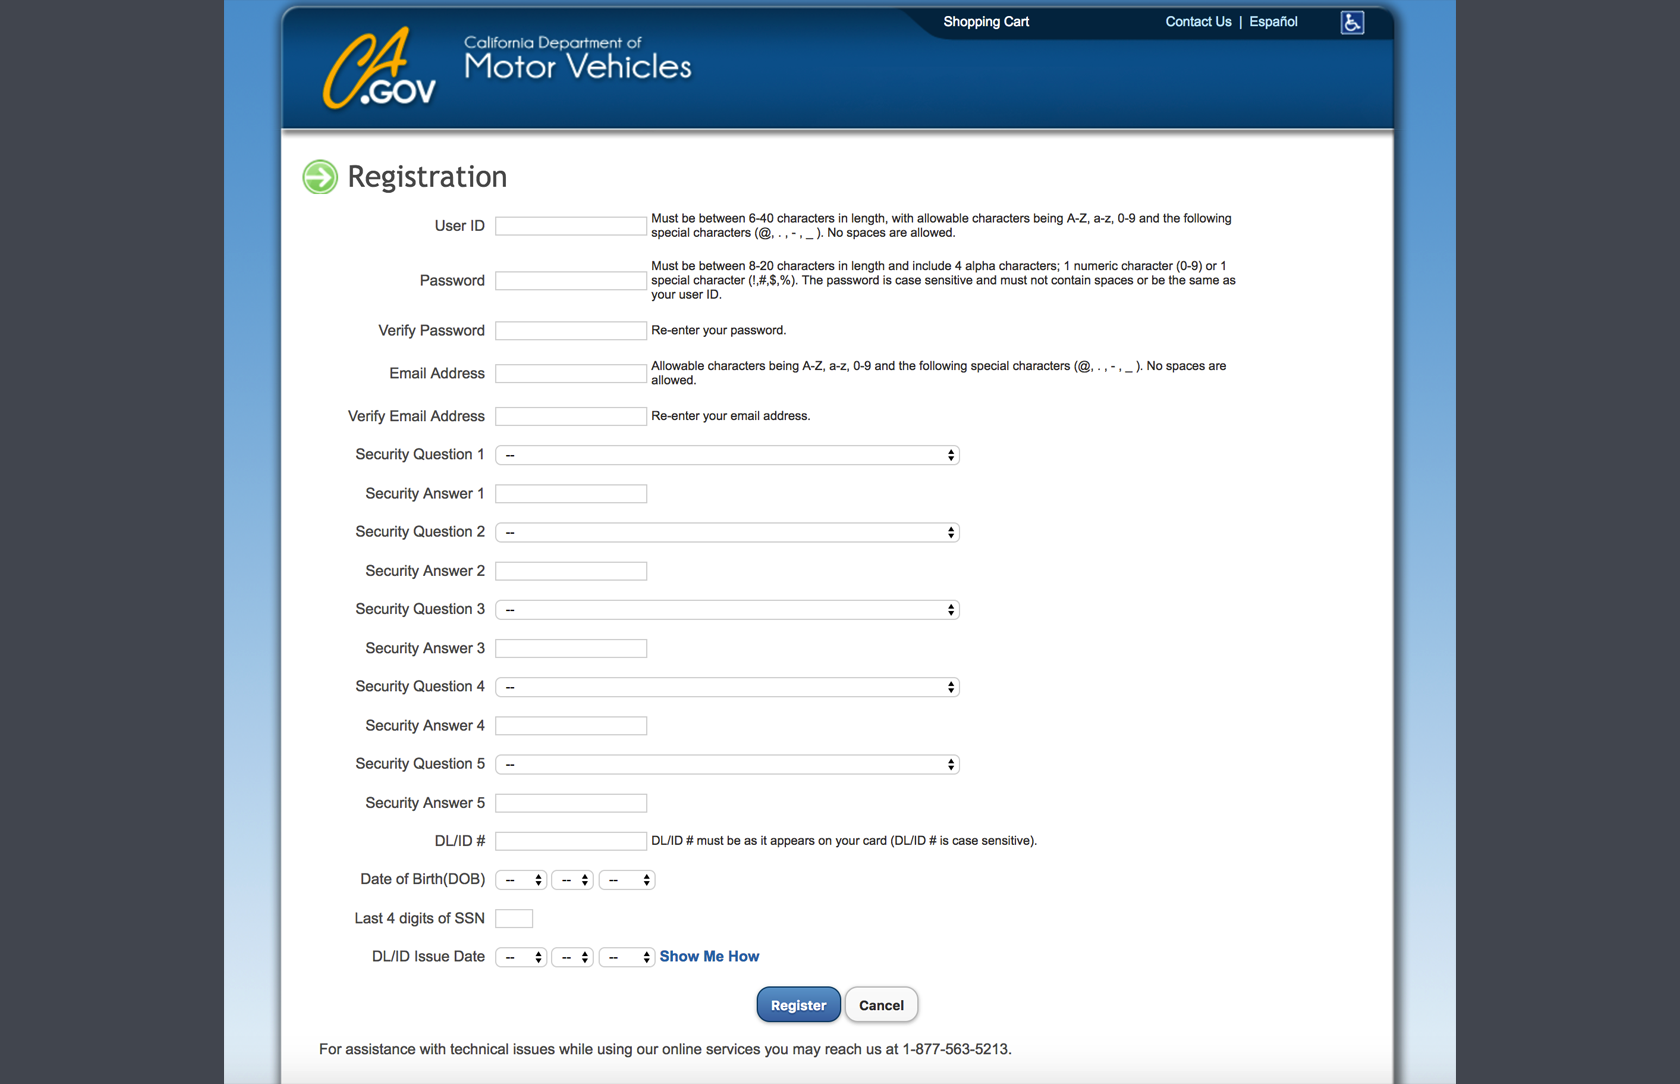 DMV web-form design